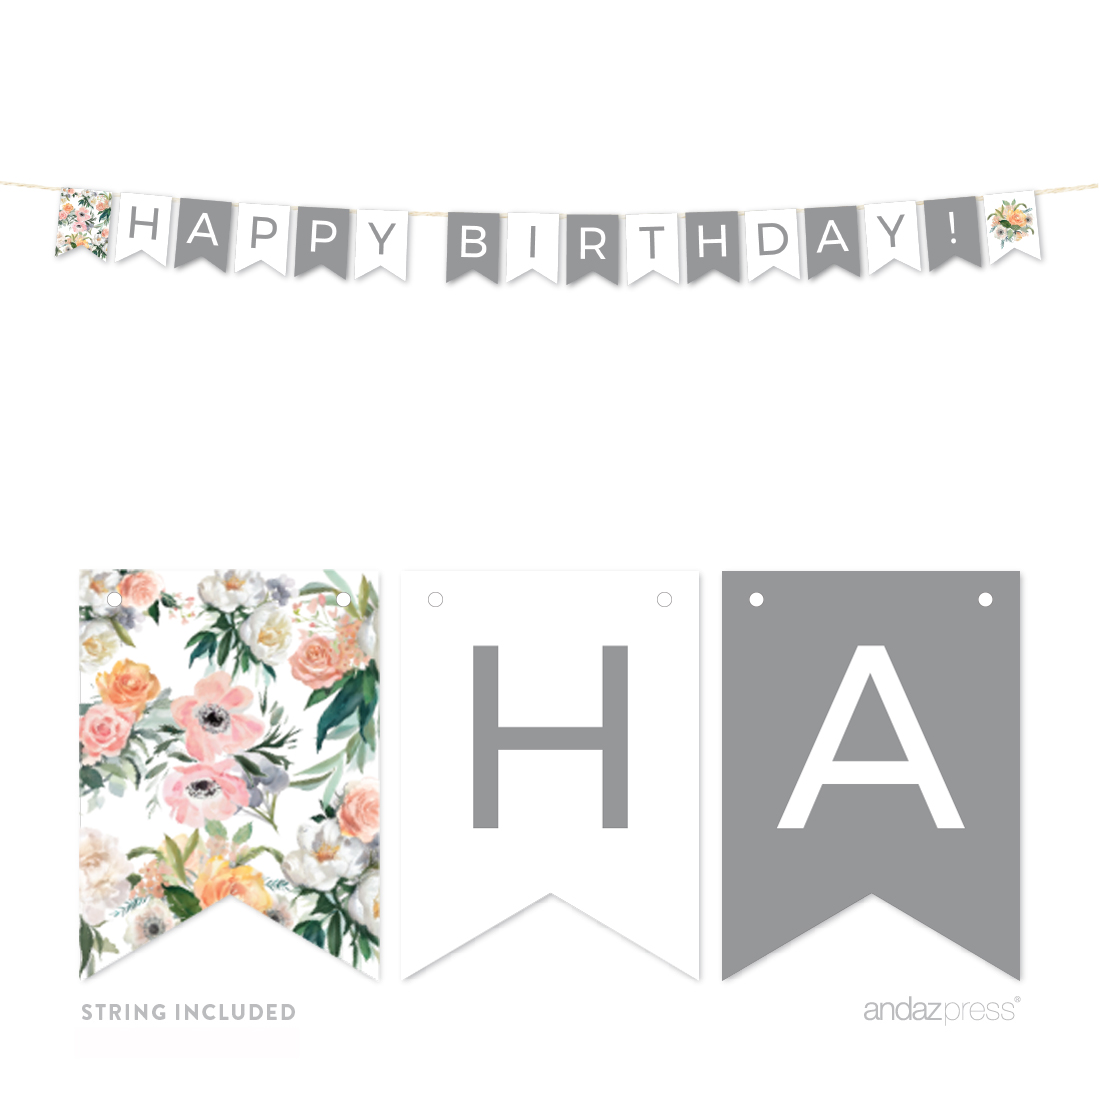 Peach Coral Floral Garden Party, 5FT Happy Birthday! Hanging Pennant Party Banner with String